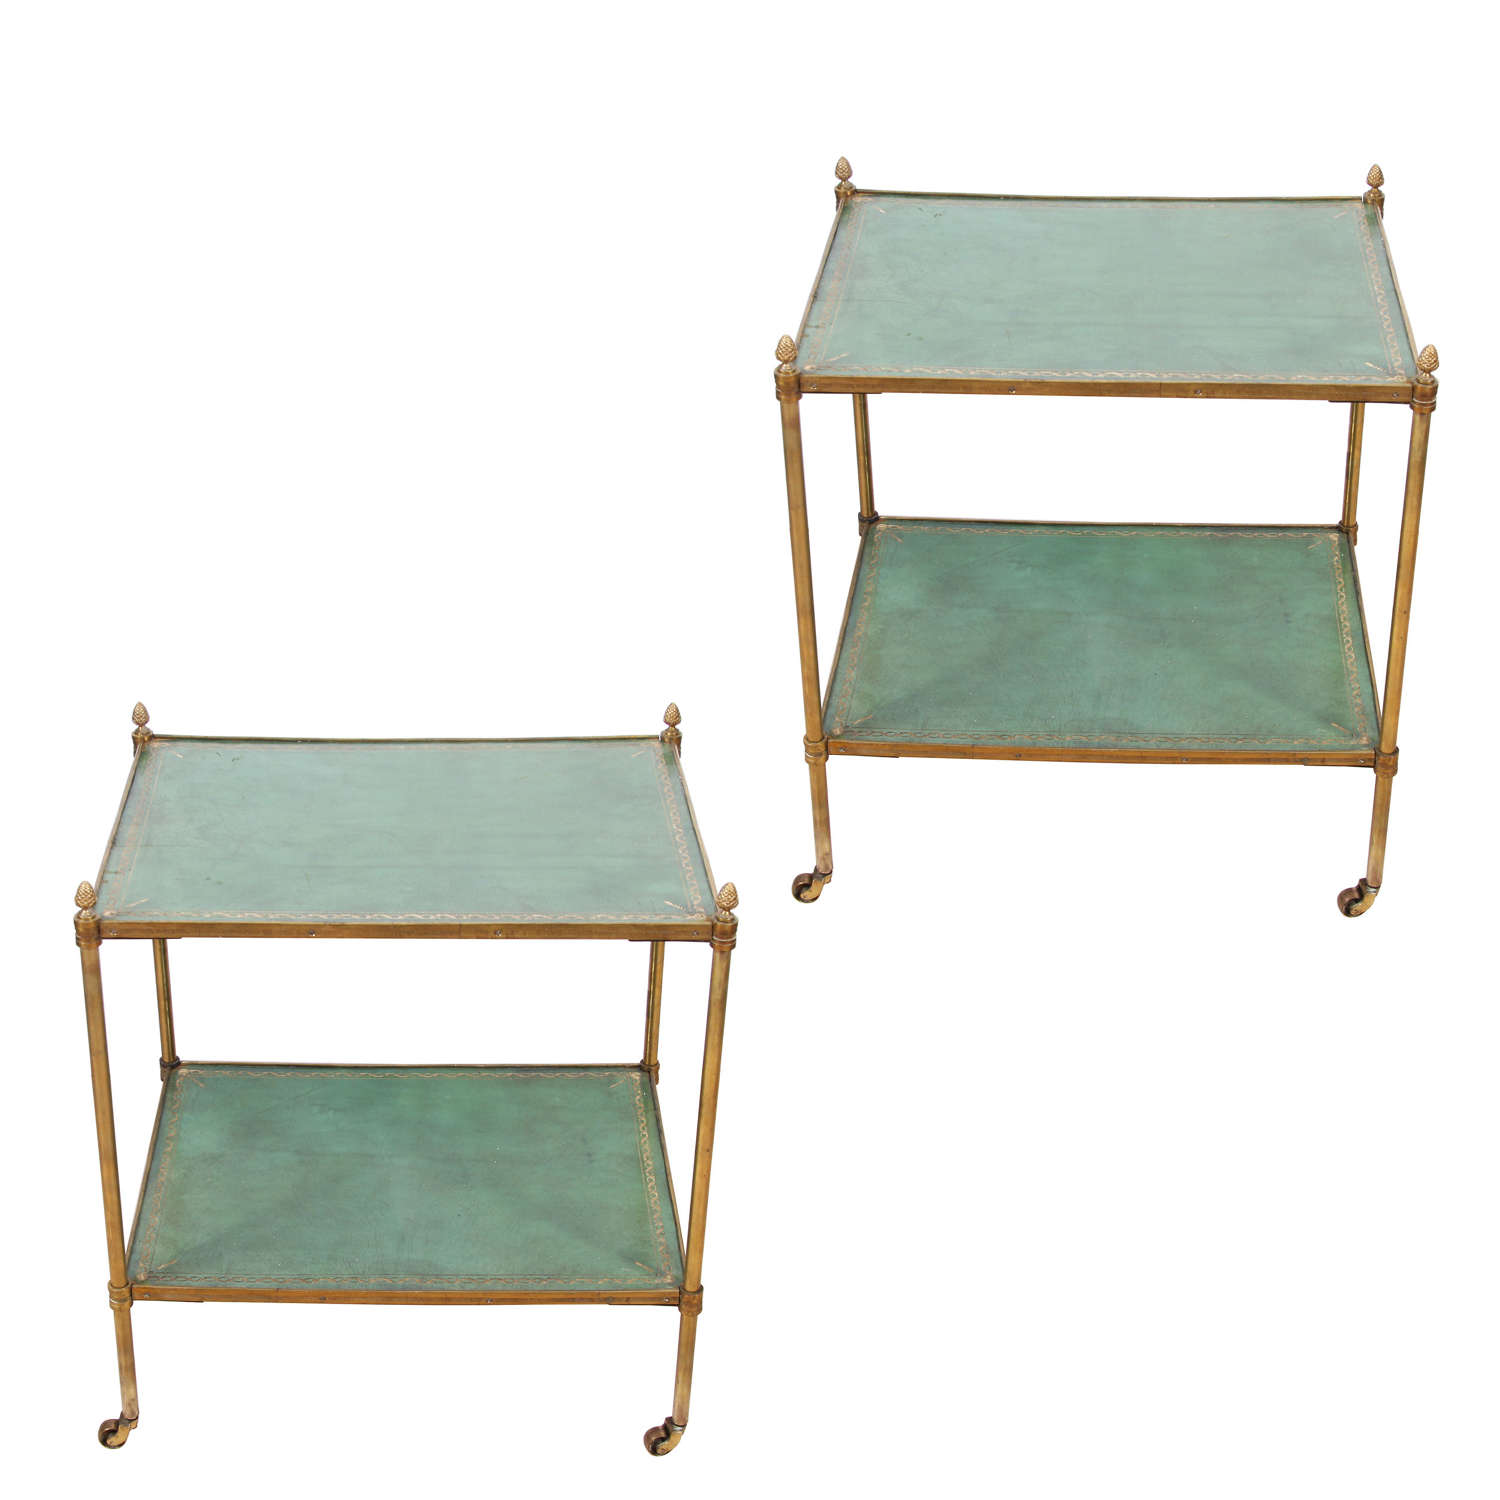 Pair of 1950s English Leather Topped Two Tier Side Tables